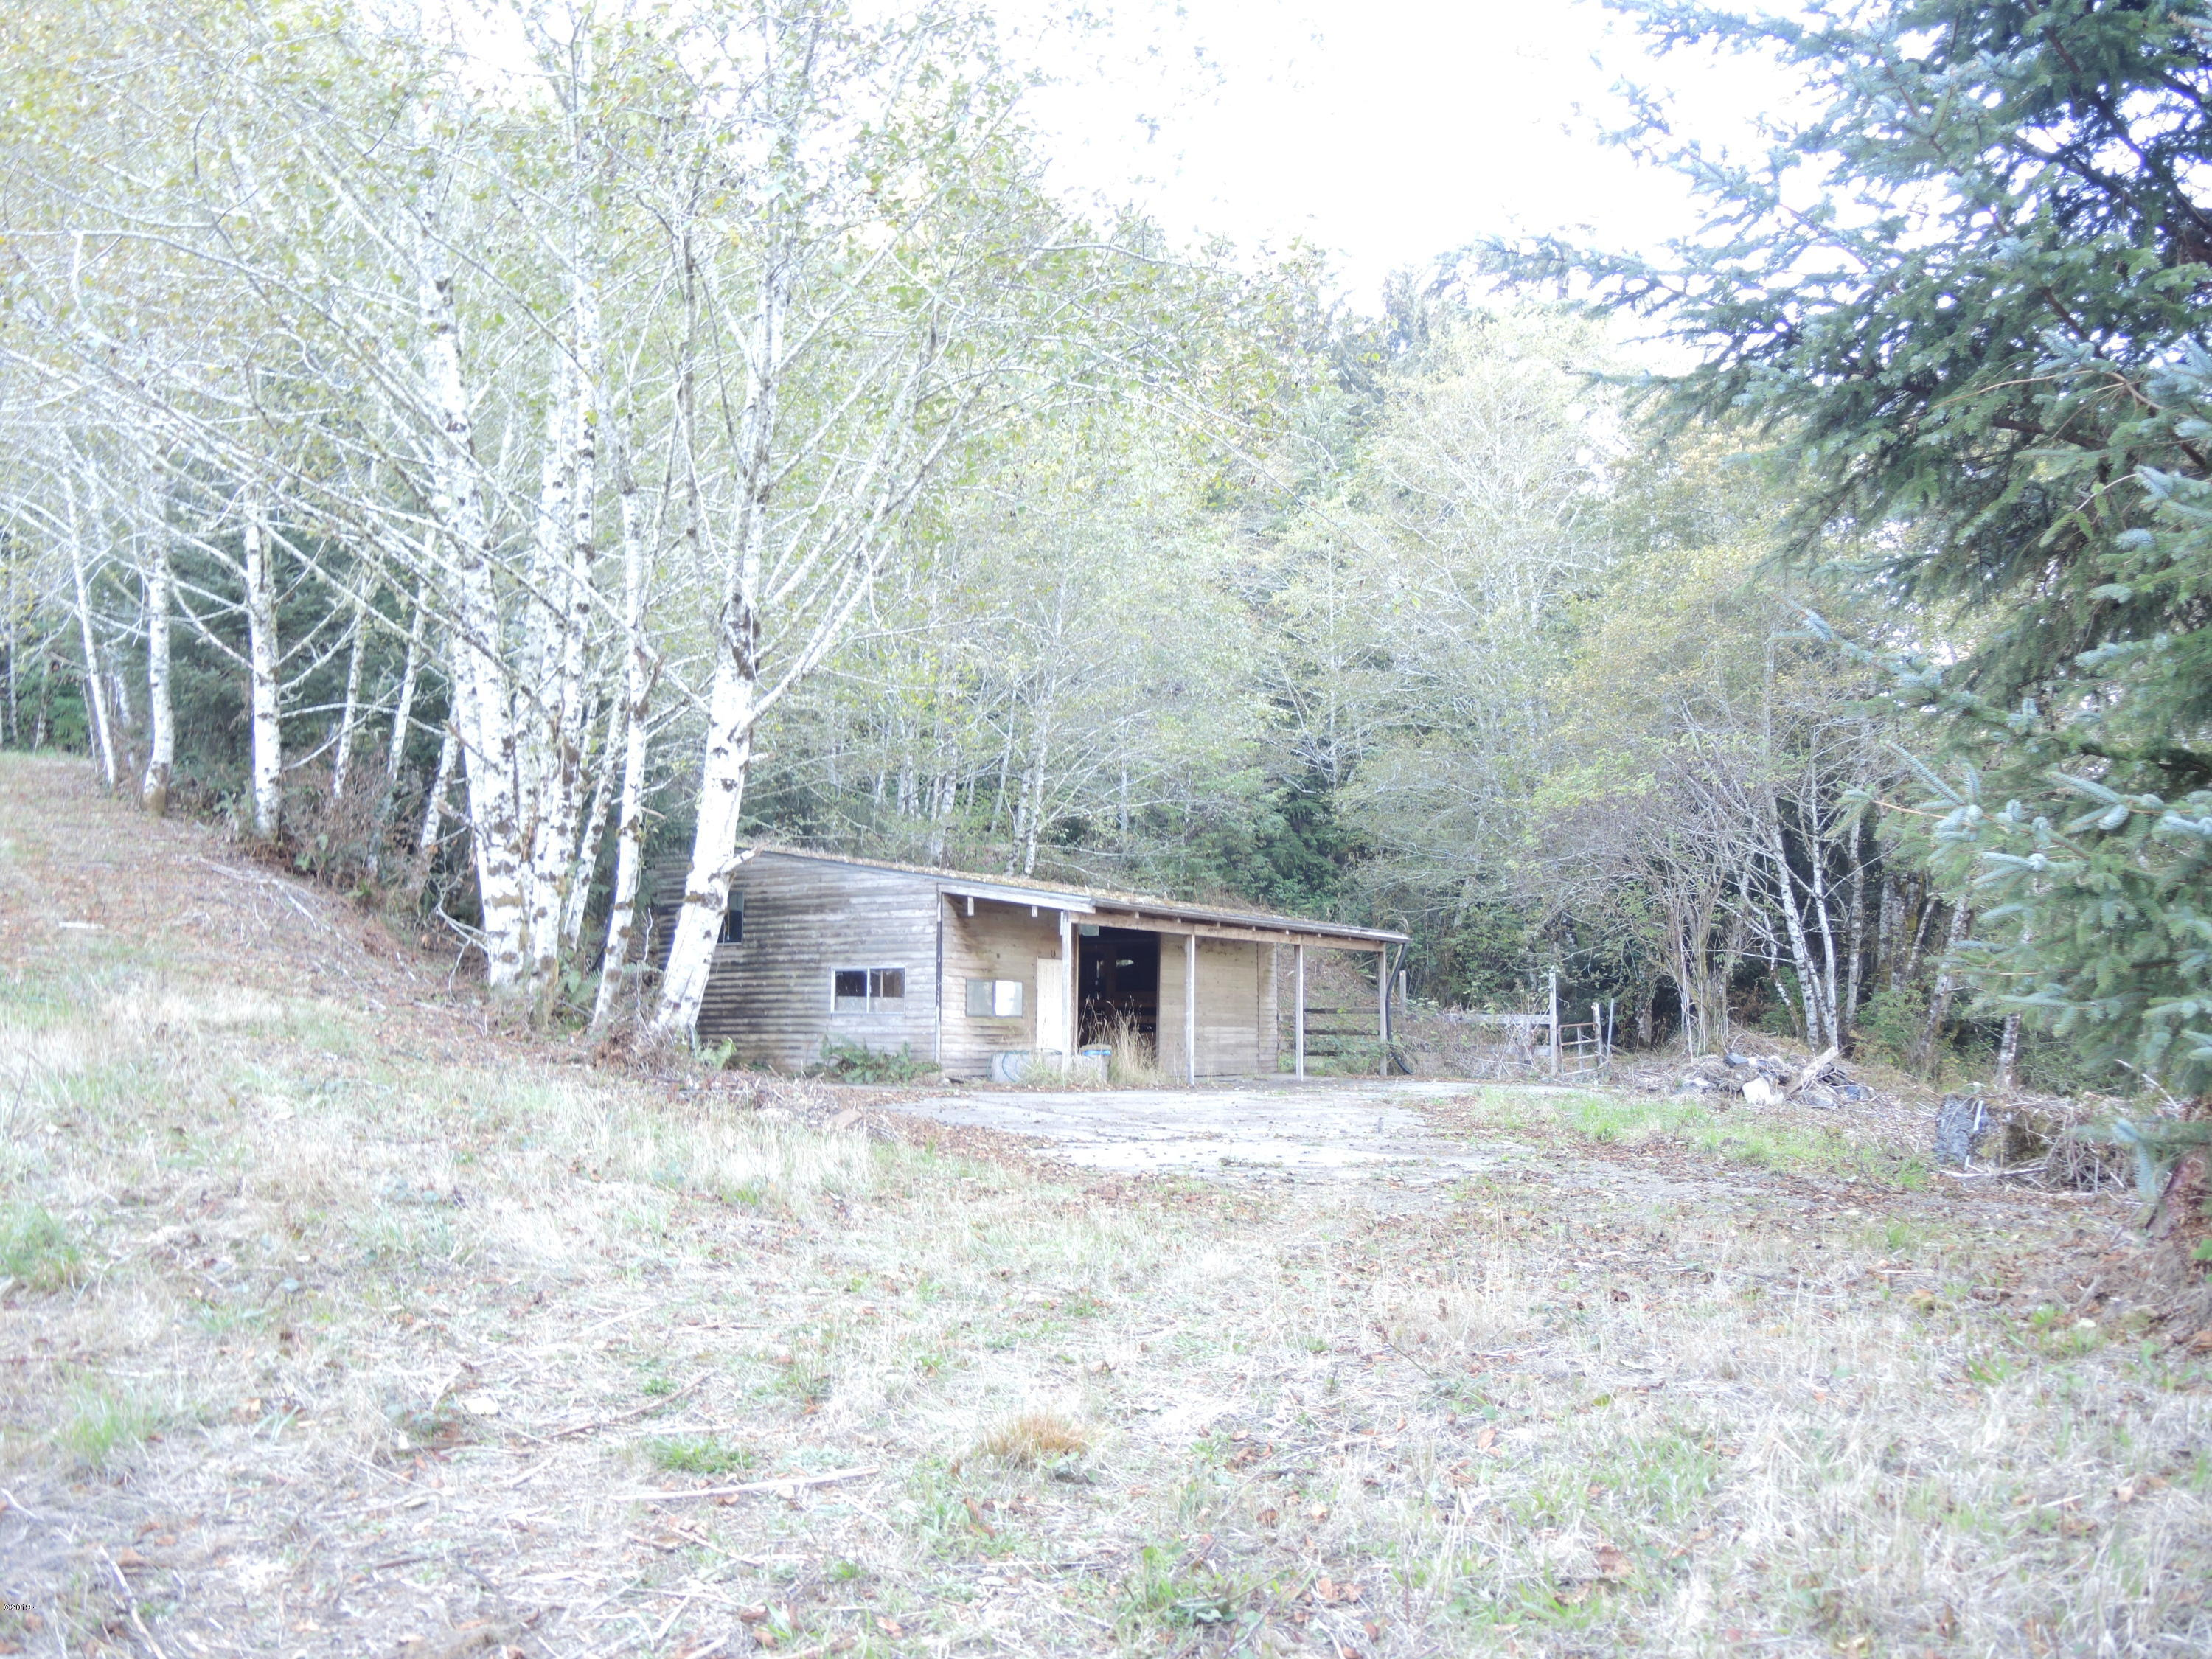 1200 S Immonen Road, Lincoln City, OR 97367 - View of building site